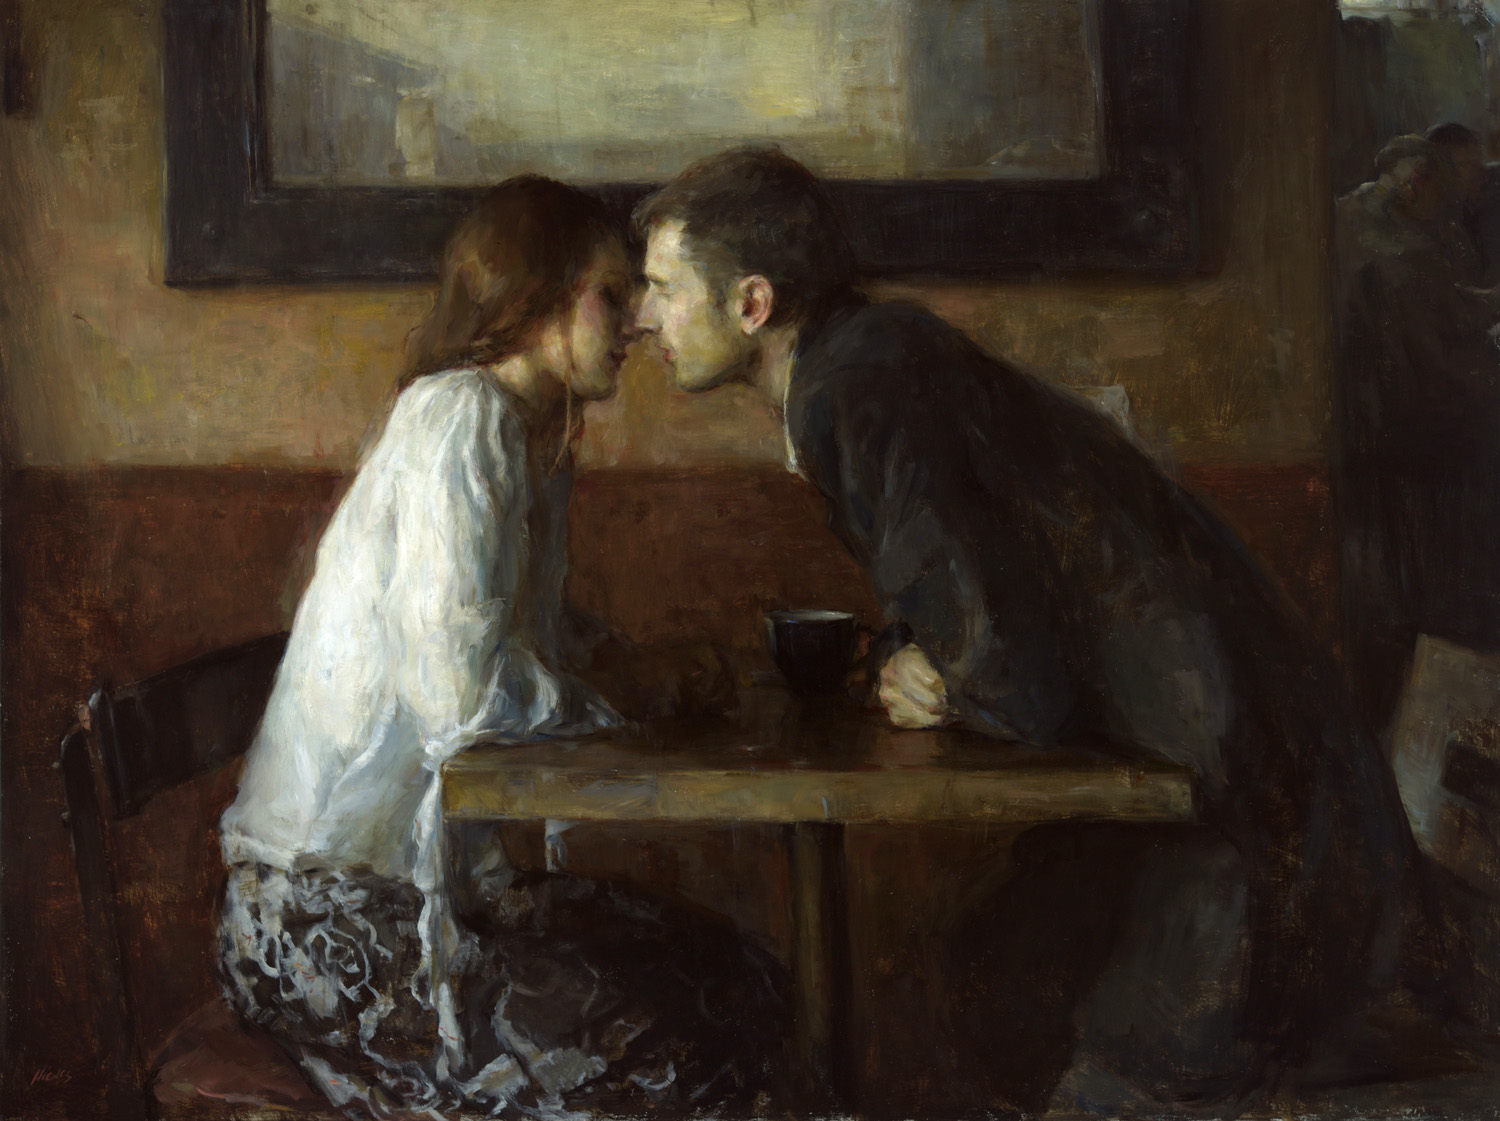 Ron Hicks. Café y amor.